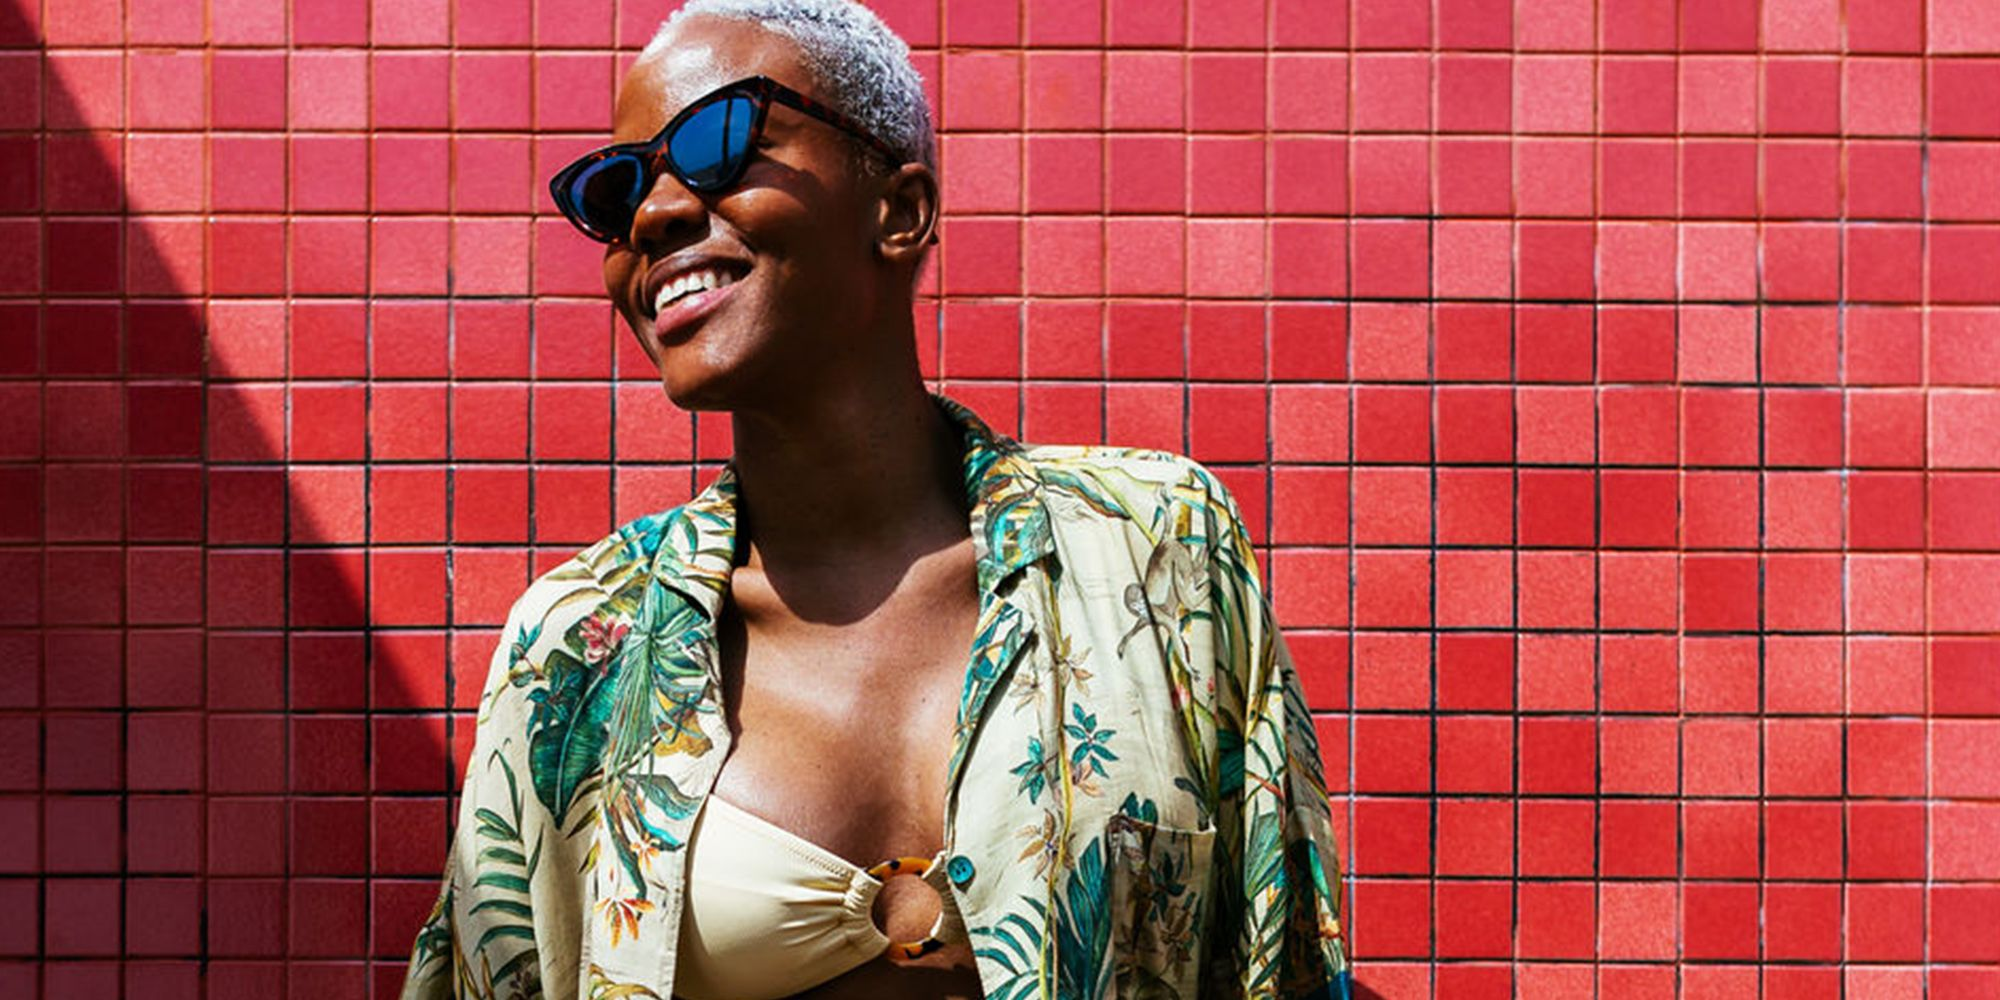 Best Suntan Lotion 2020 The 10 Best Sunscreens for People of Color in 2018   Sun